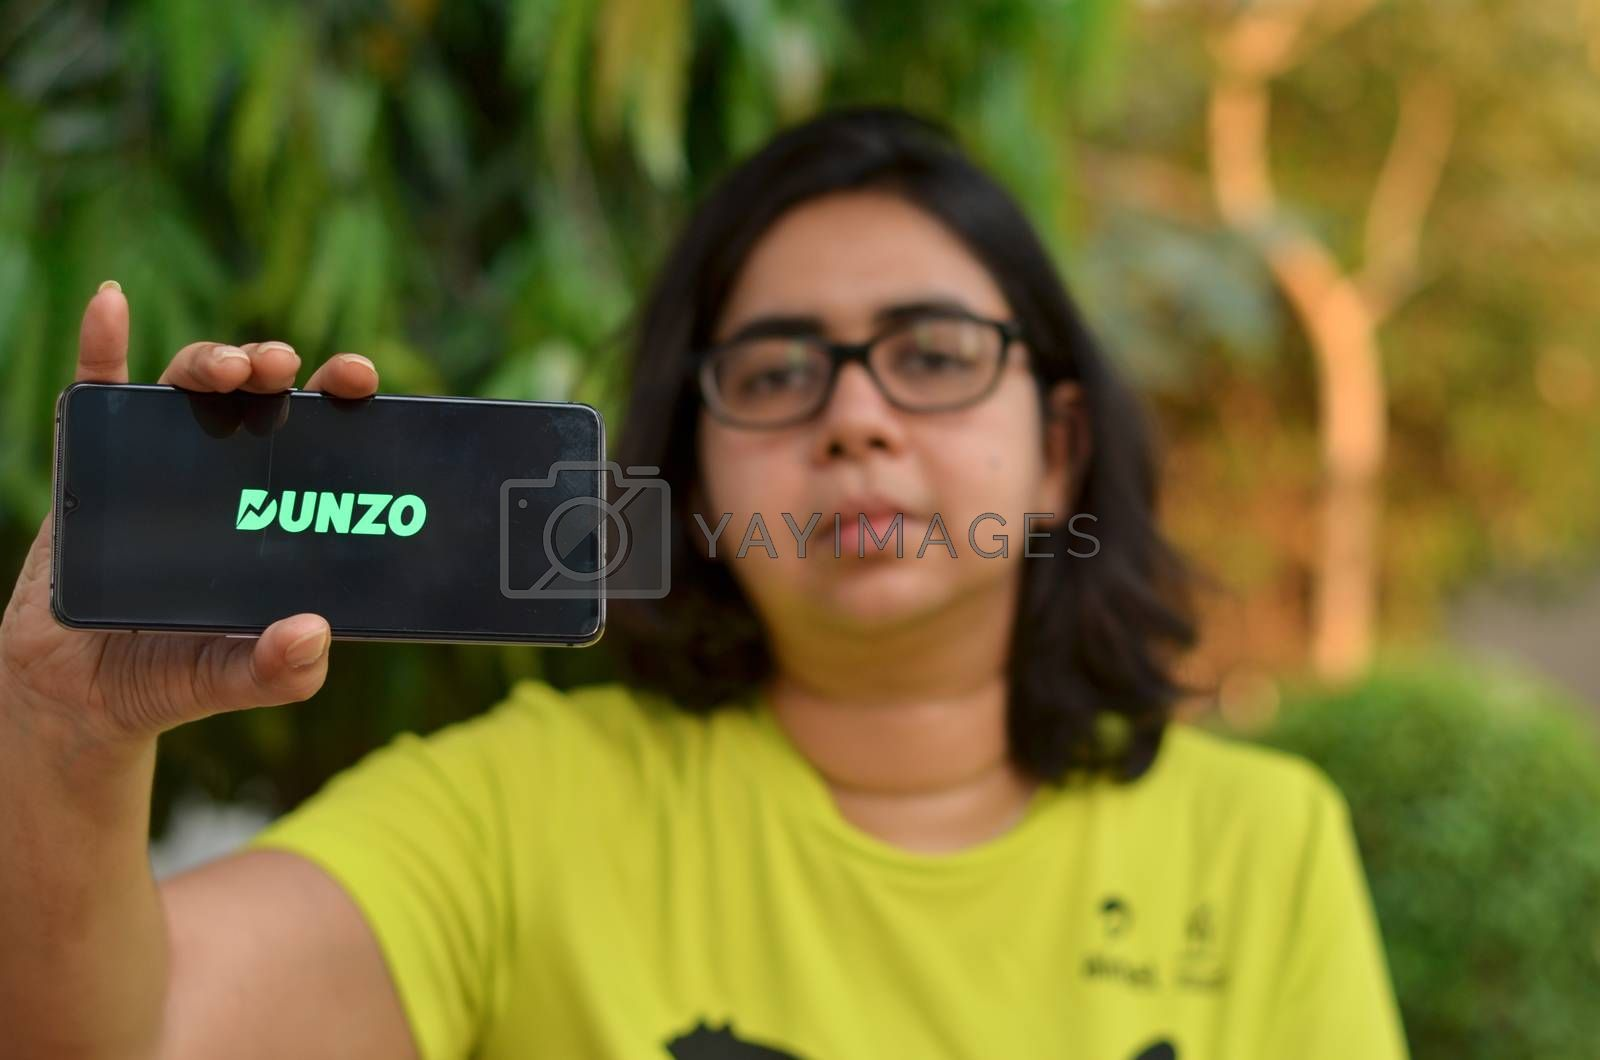 Mumbai, India, 2020. Young Girl with Dunzo Delivery app logo glowing on the mobile phone screen in her hands. Selective focus and shallow depth of field. The main focus is on the logo.